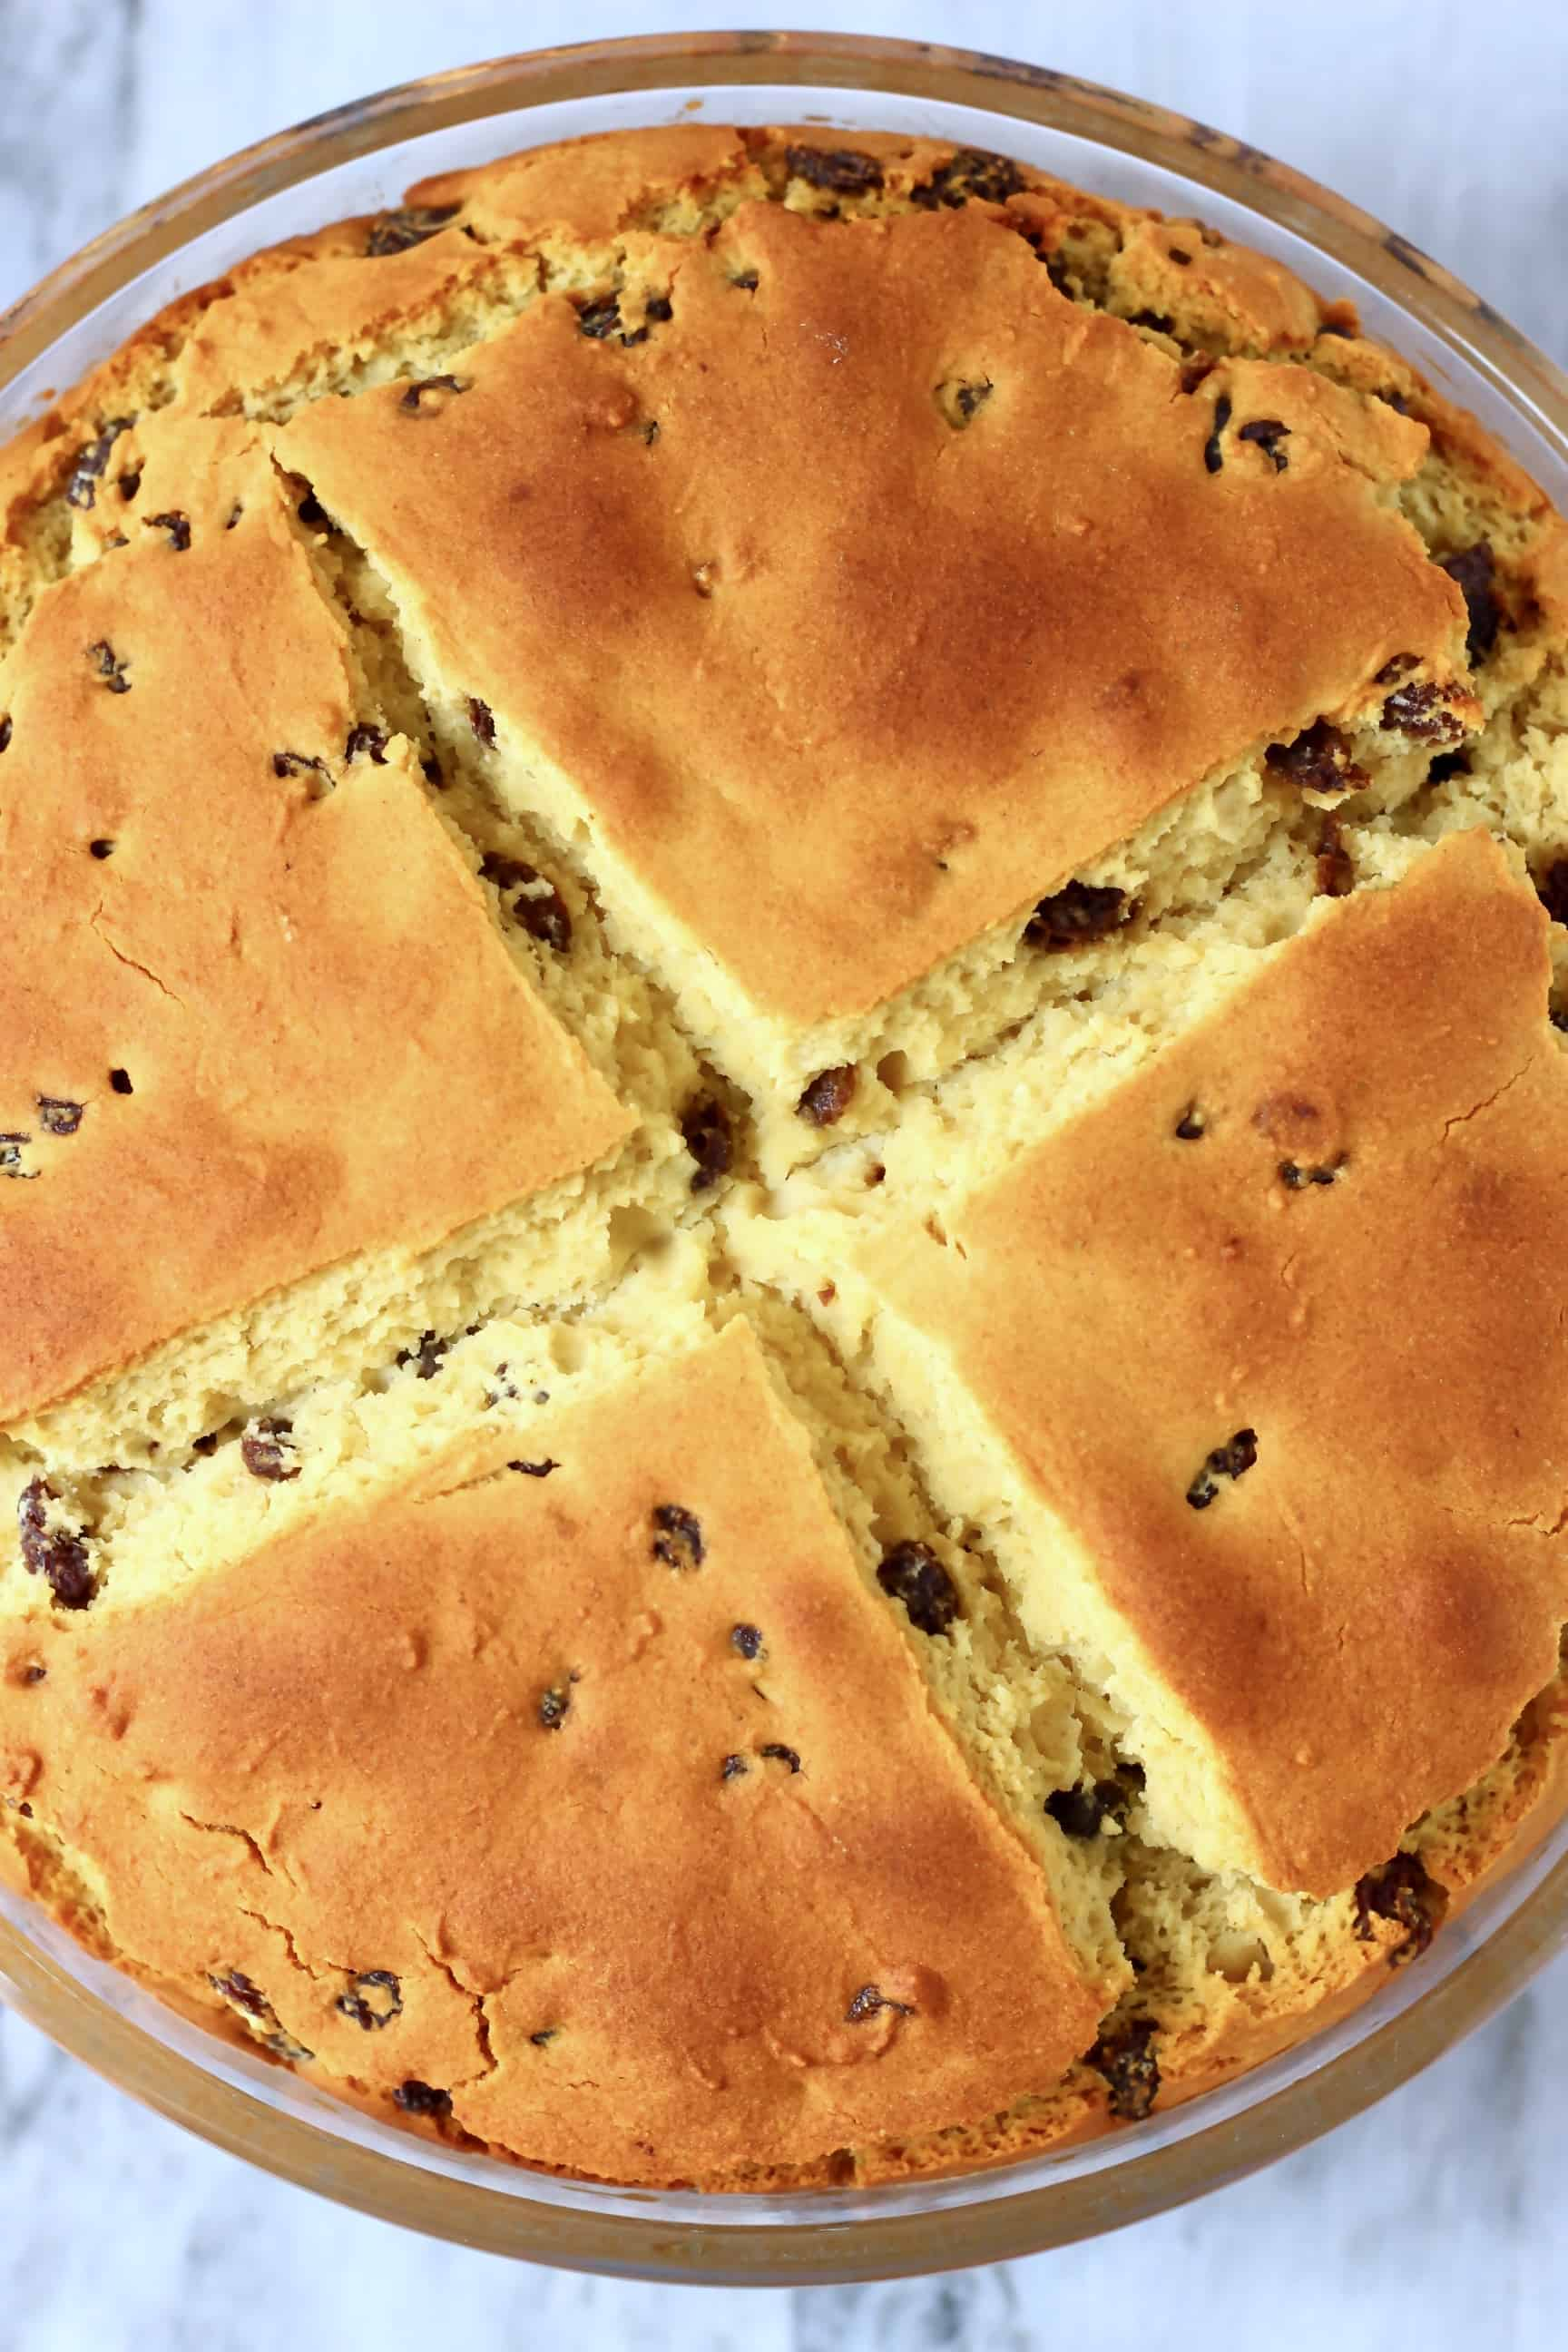 A round loaf of Gluten-Free Vegan Irish Soda Bread with a cross on top in a glass baking dish